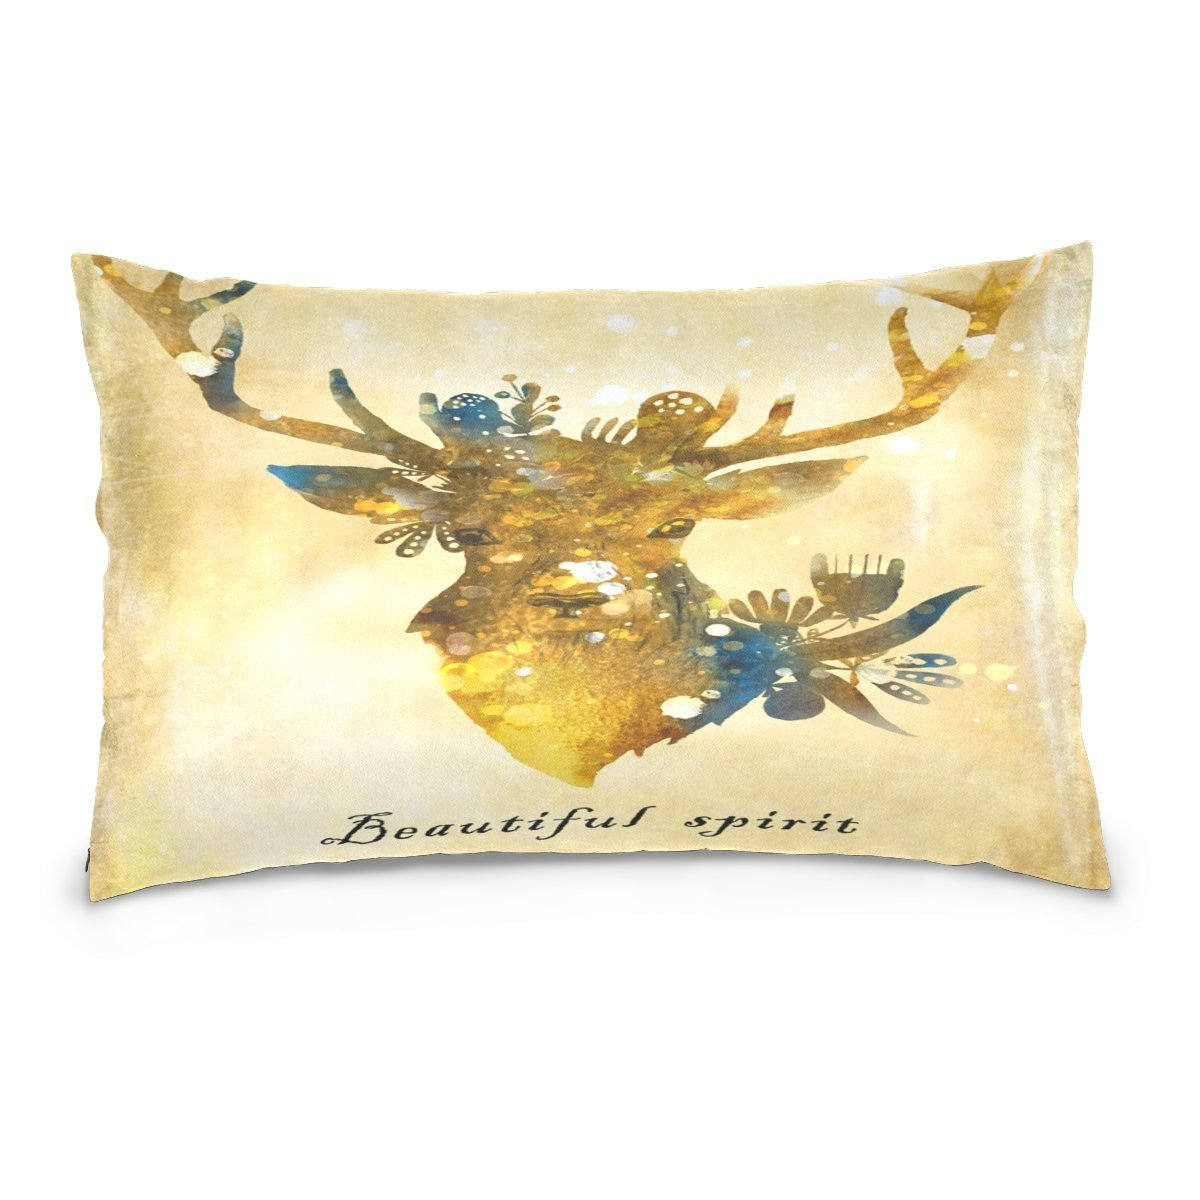 Cheap Hand Painted Pillow Covers Find Hand Painted Pillow Covers